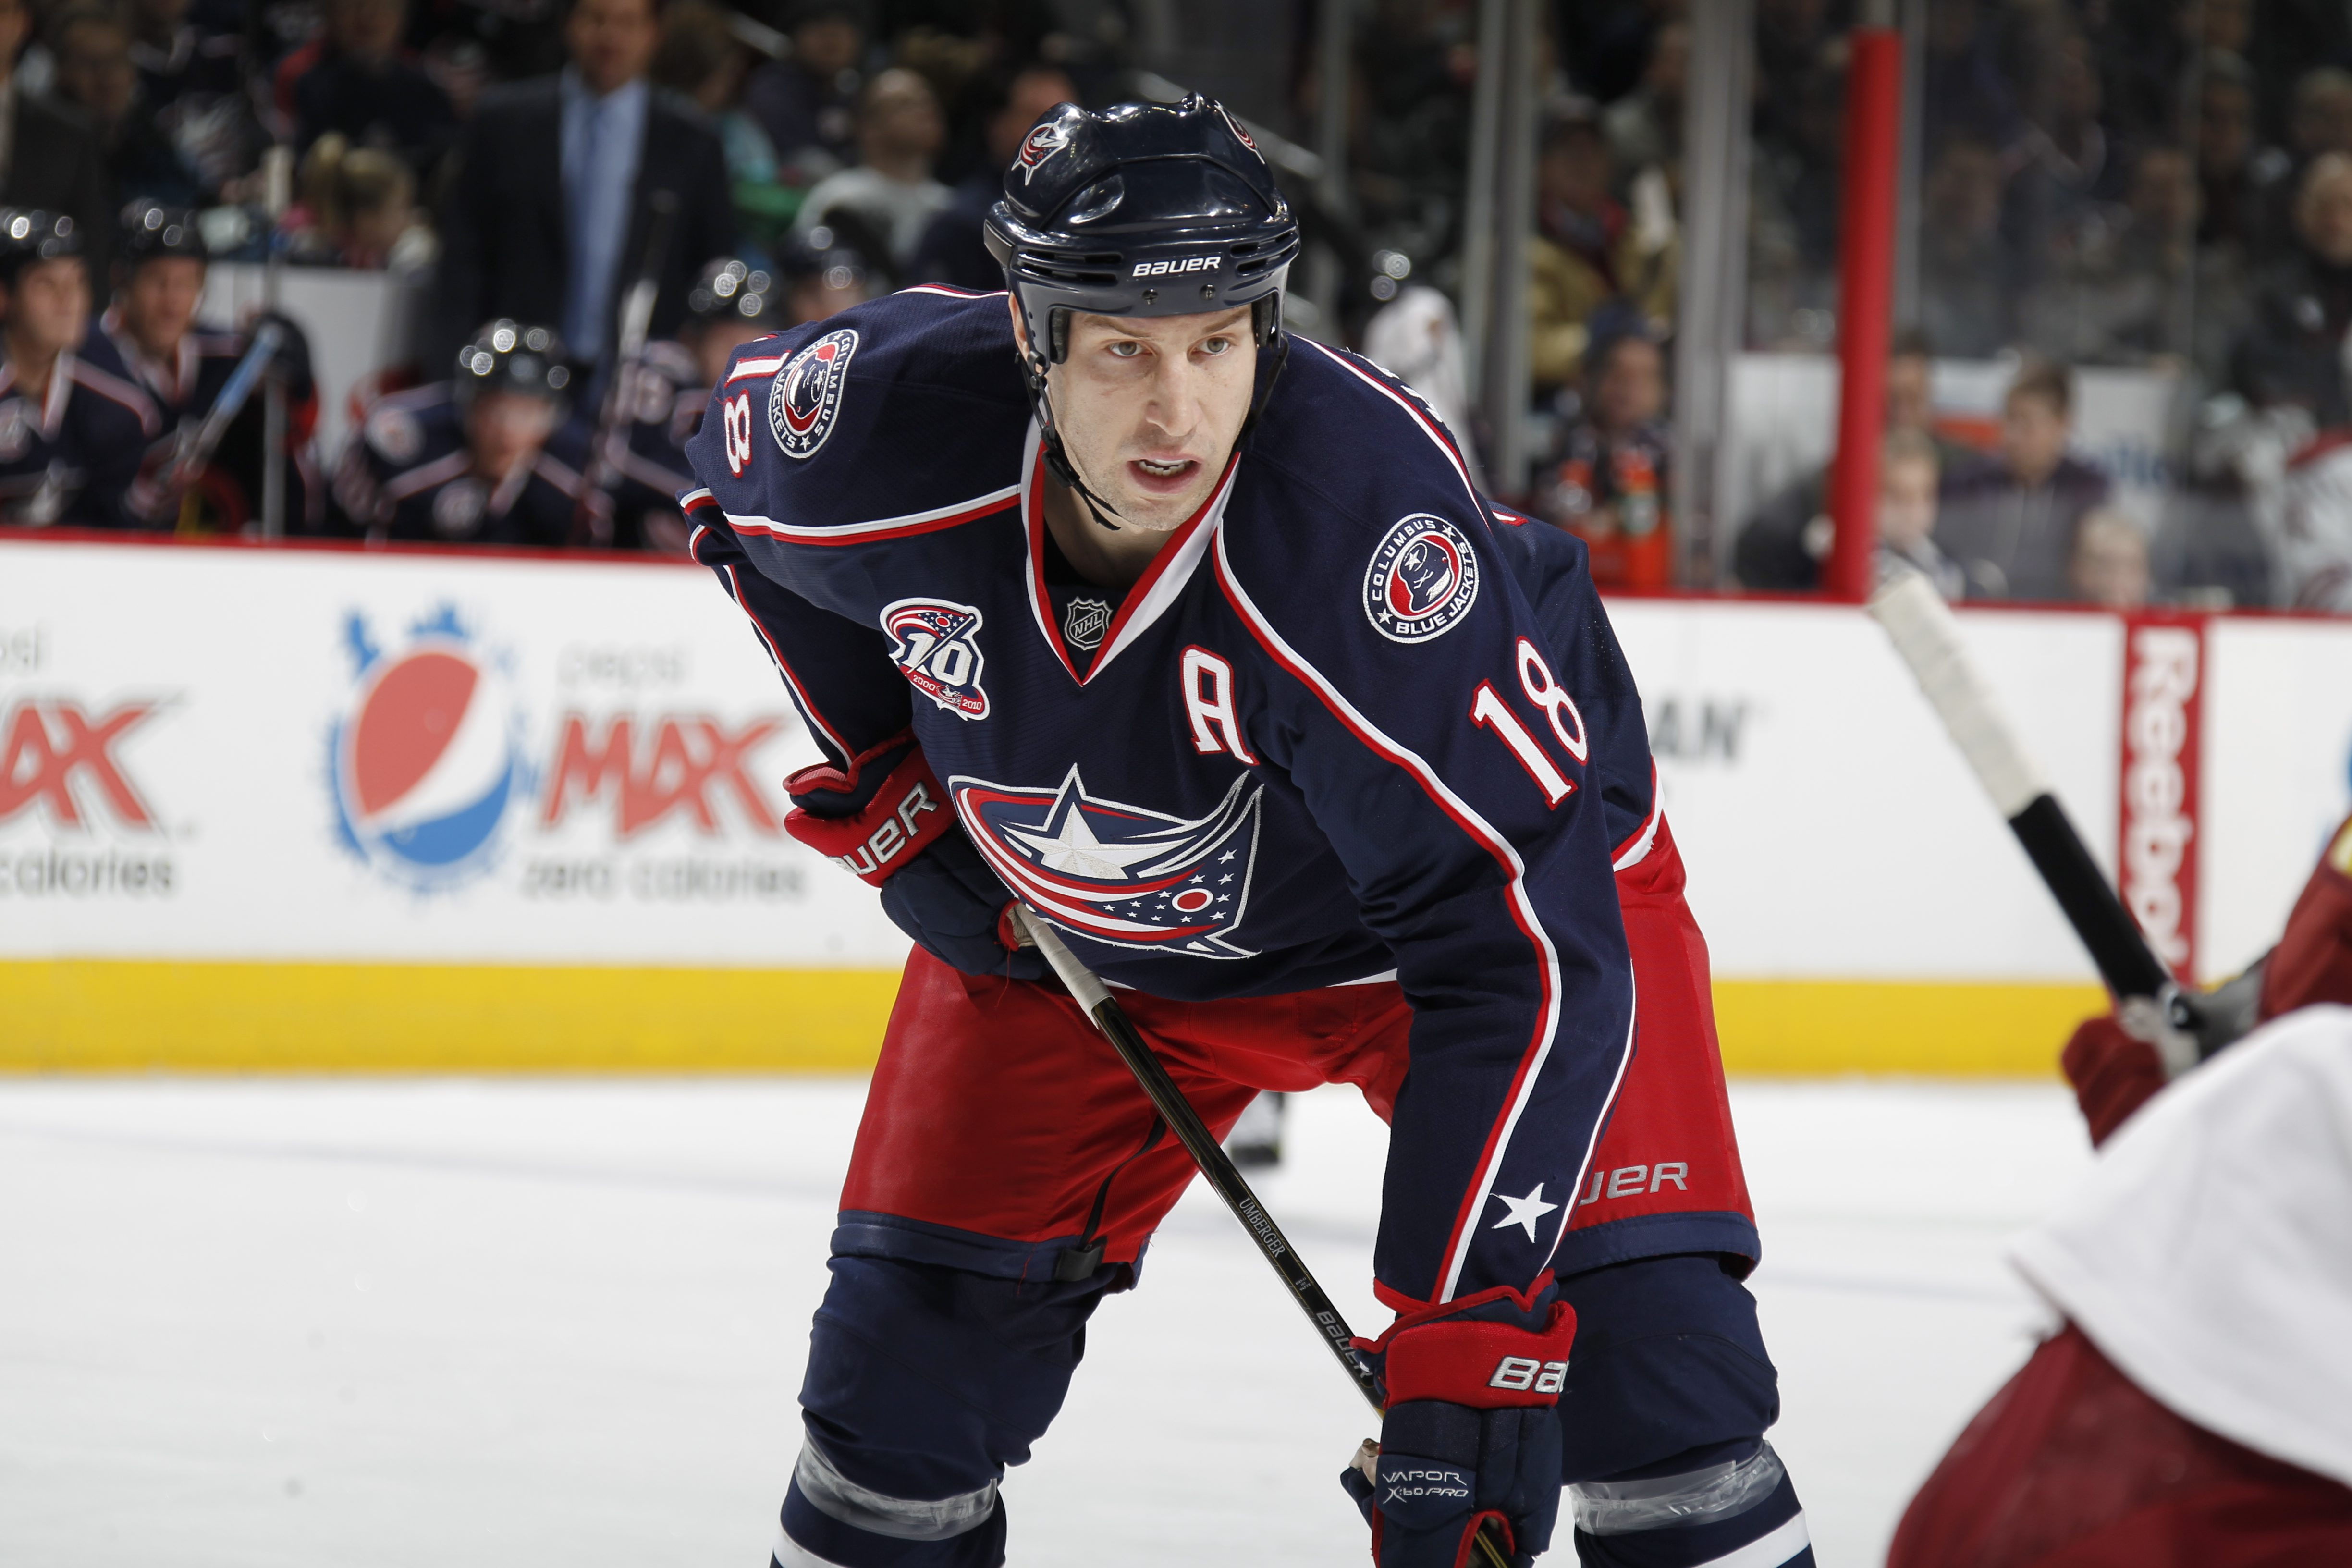 COLUMBUS, OH - JANUARY 11: RJ Umberger #18 of the Columbus Blue Jackets skates against the Phoenix Coyotes during a game on January 11, 2011 at the Nationwide Arena in Columbus, Ohio. (Photo by Gregory Shamus/Getty Images)